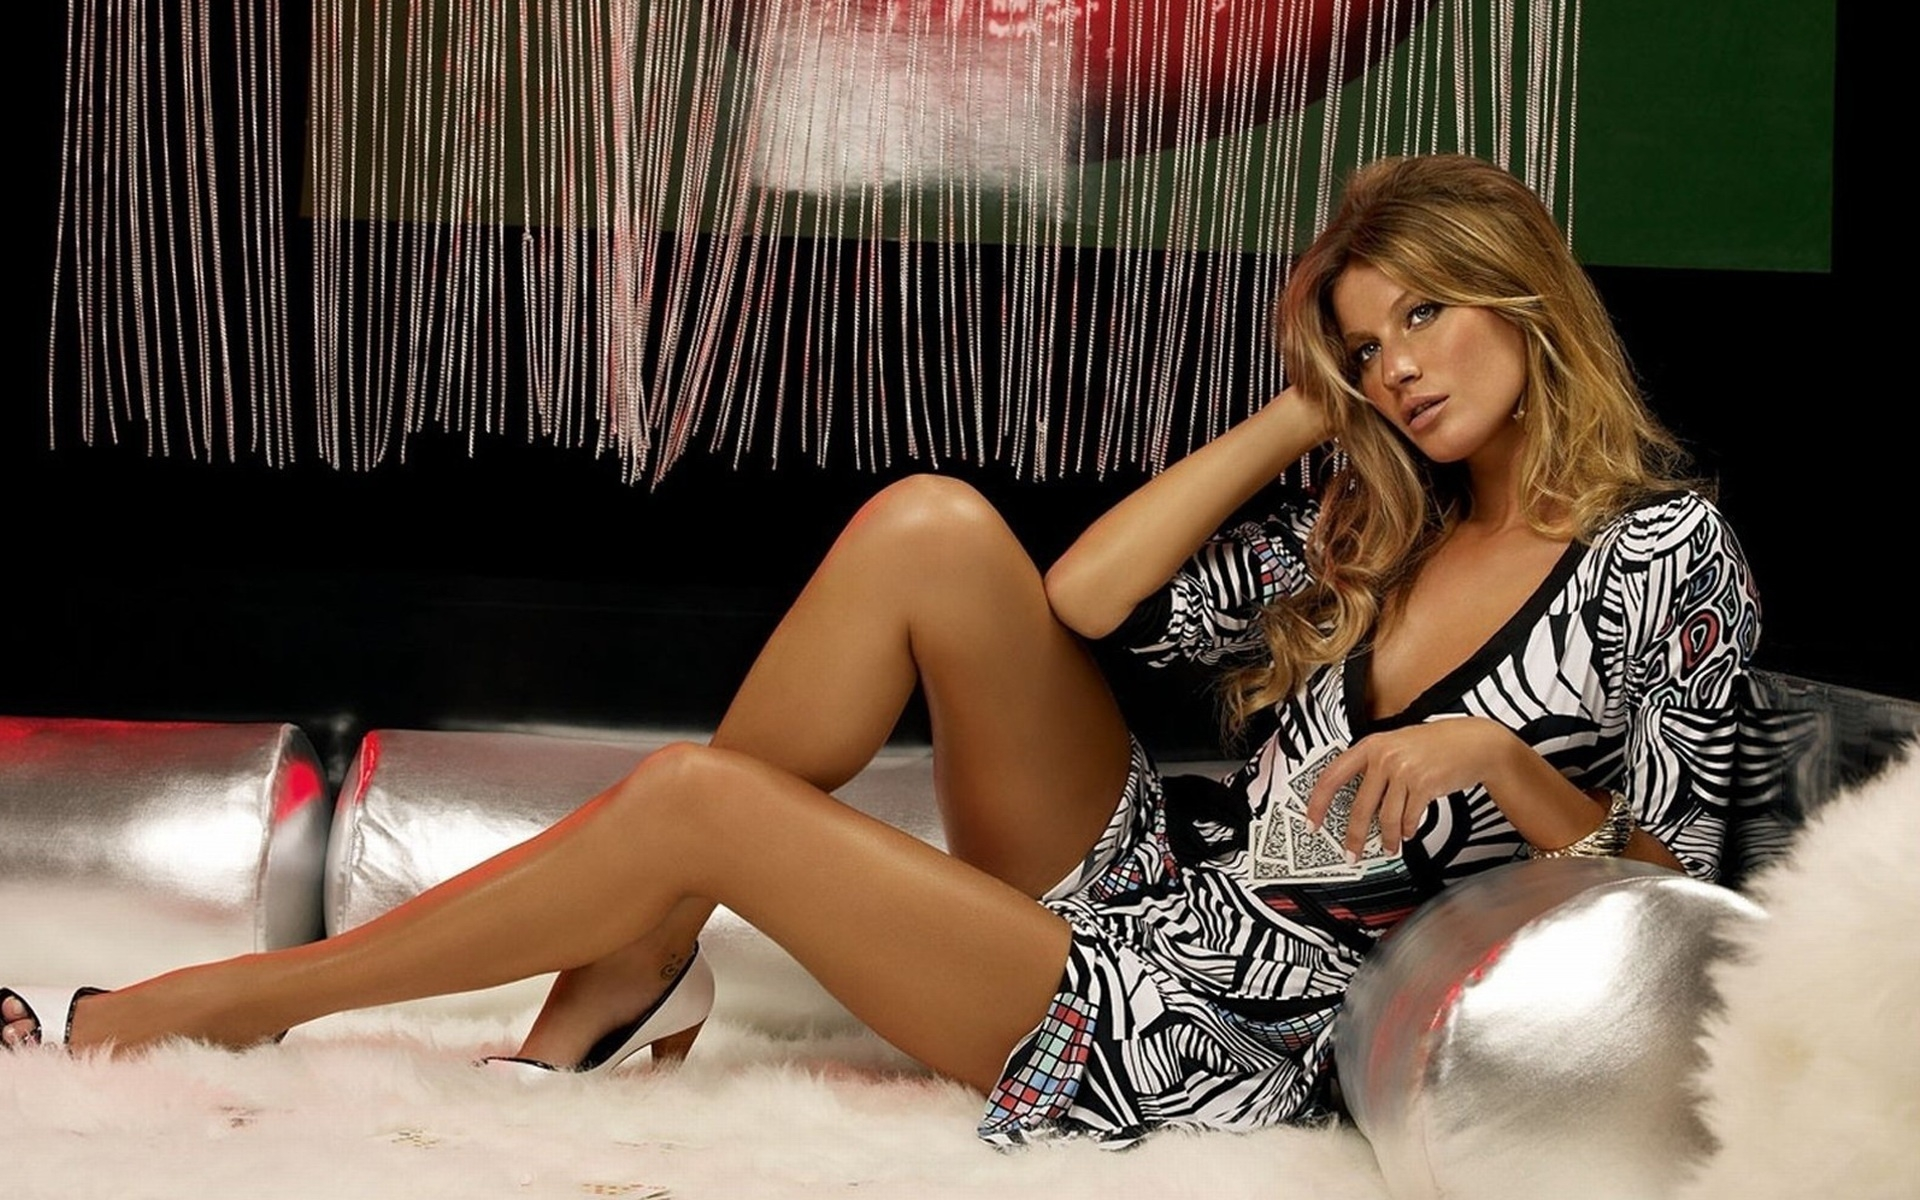 gisele-bundchen-hot-images